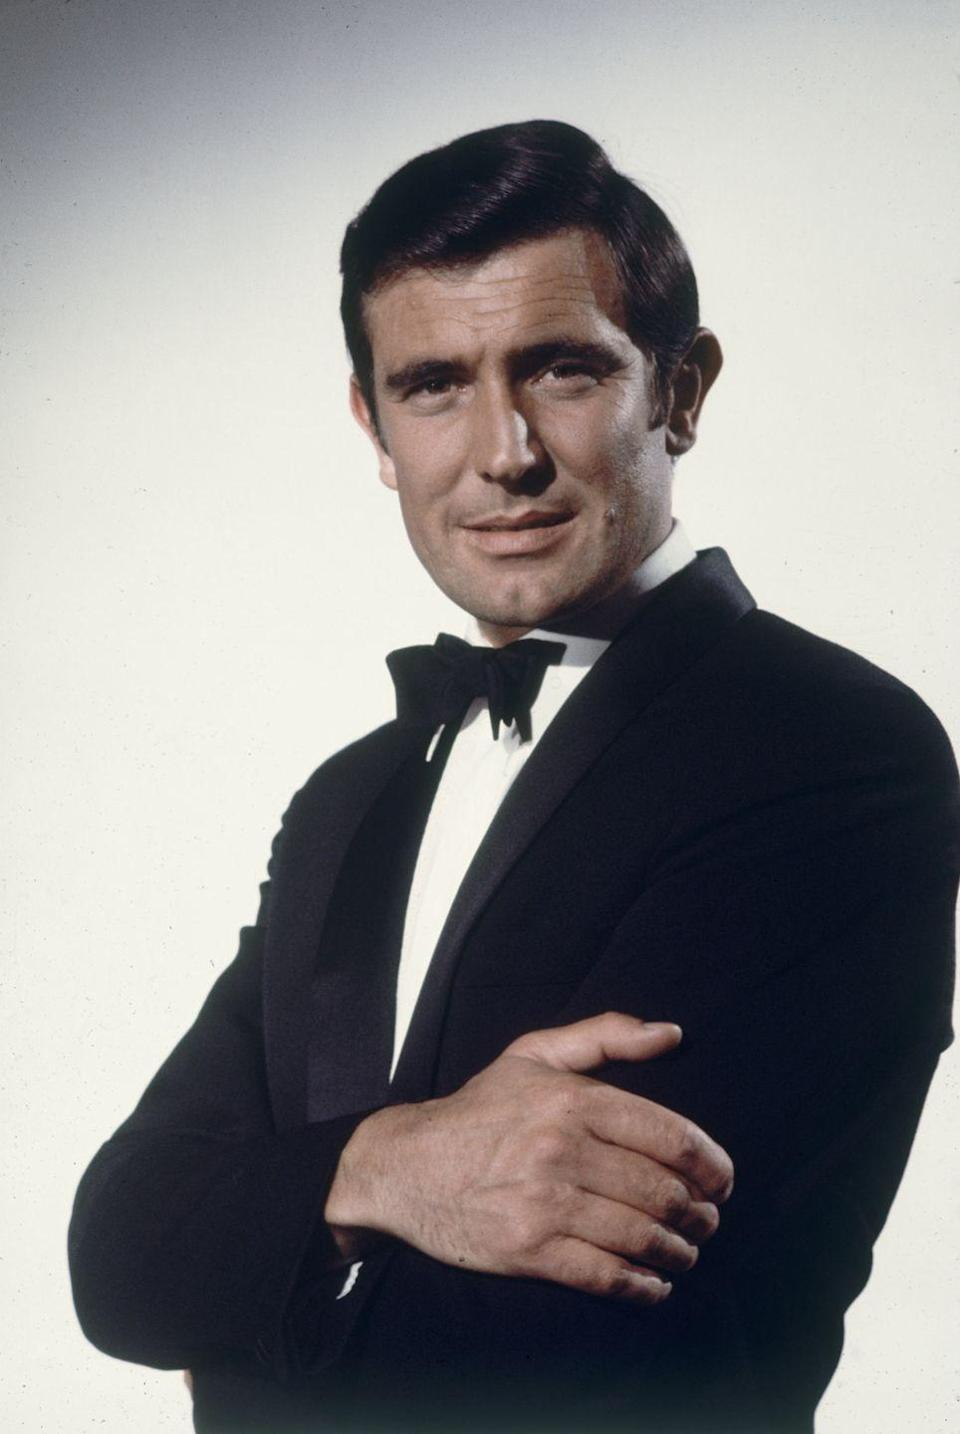 <p>First of all, Lazenby is Australian, which is a little weird for Bond, but his turn as 007 in 1969's <em>On Her Majesty's Secret Service</em> is one of the better Bond films of the '60s. That's unexpected because Lazenby was a model and commercial actor before taking the part. It's a shame Lazenby quit after his first shot at it.</p><p><strong>Standout Film: </strong><em>On Her Majesty's Secret Service </em></p>